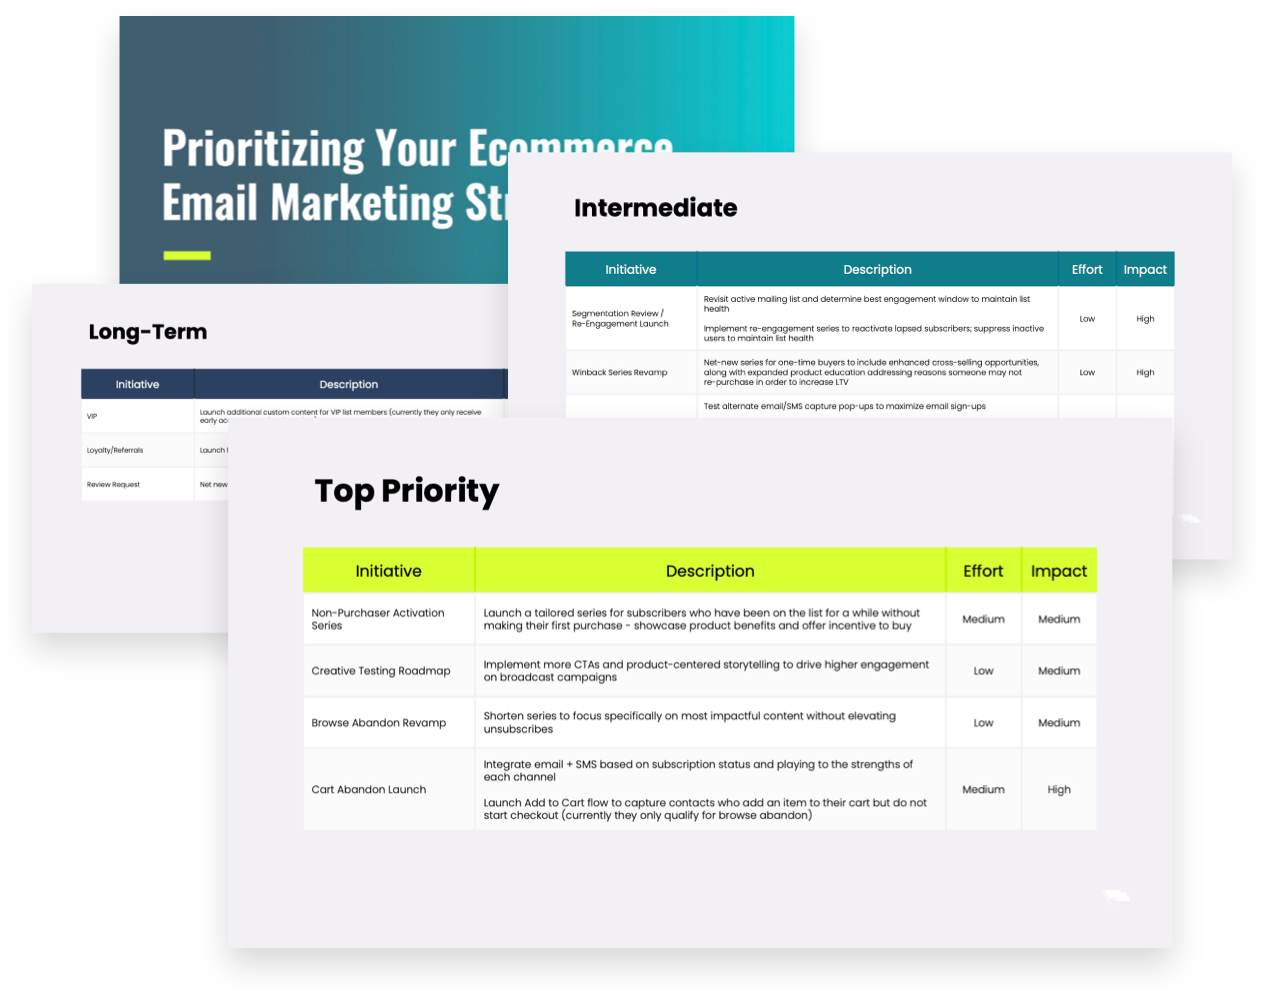 Prioritizing Your Ecommerce Email Marketing Strategy